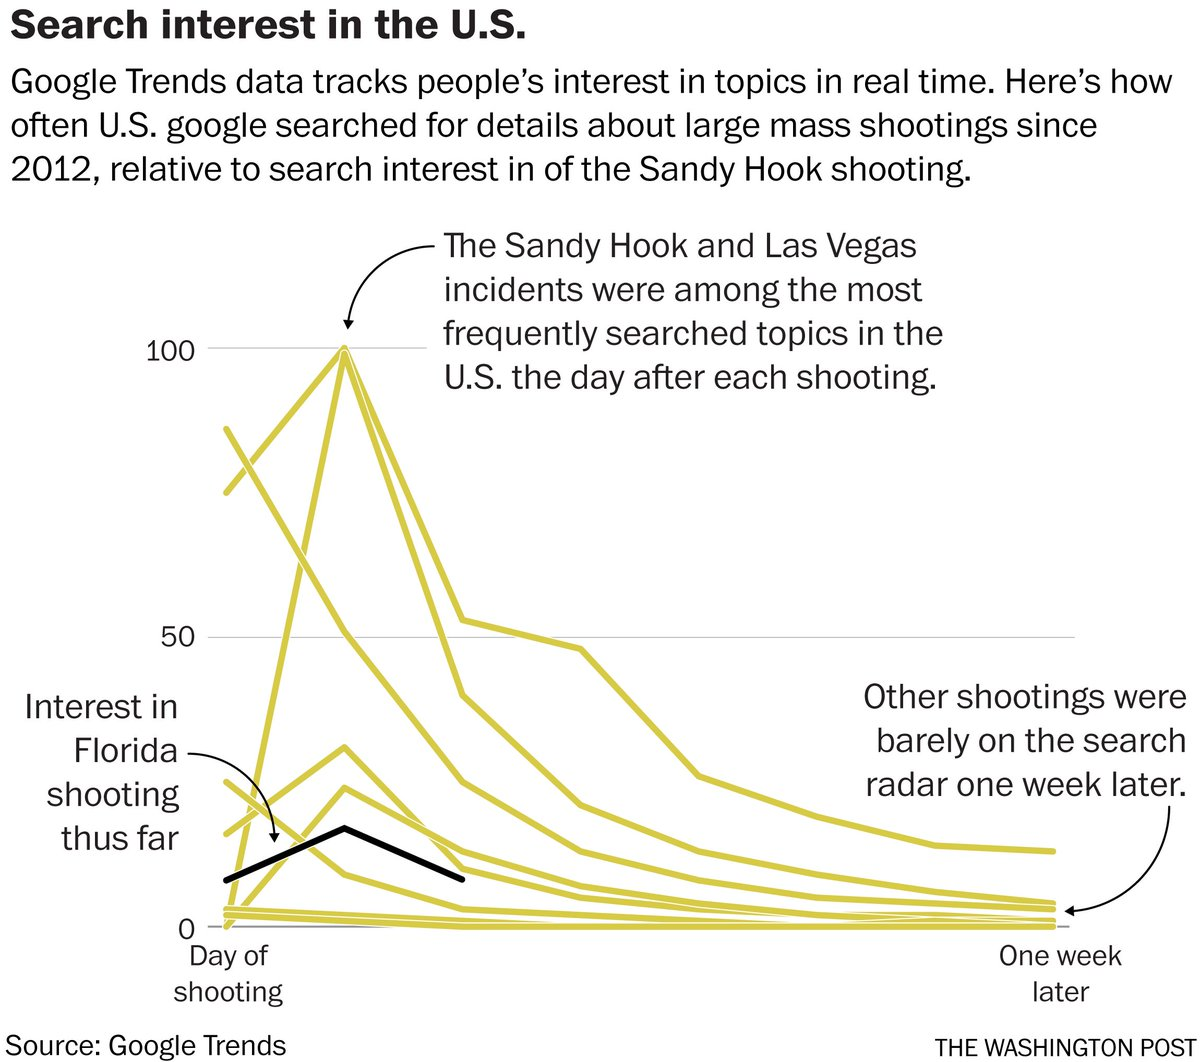 The Florida school shooting has America's attention. But for how long? Looking at Google Search trends for more recent mass shootings, it's clear that the national attention span for these events is getting shorter and shorter.